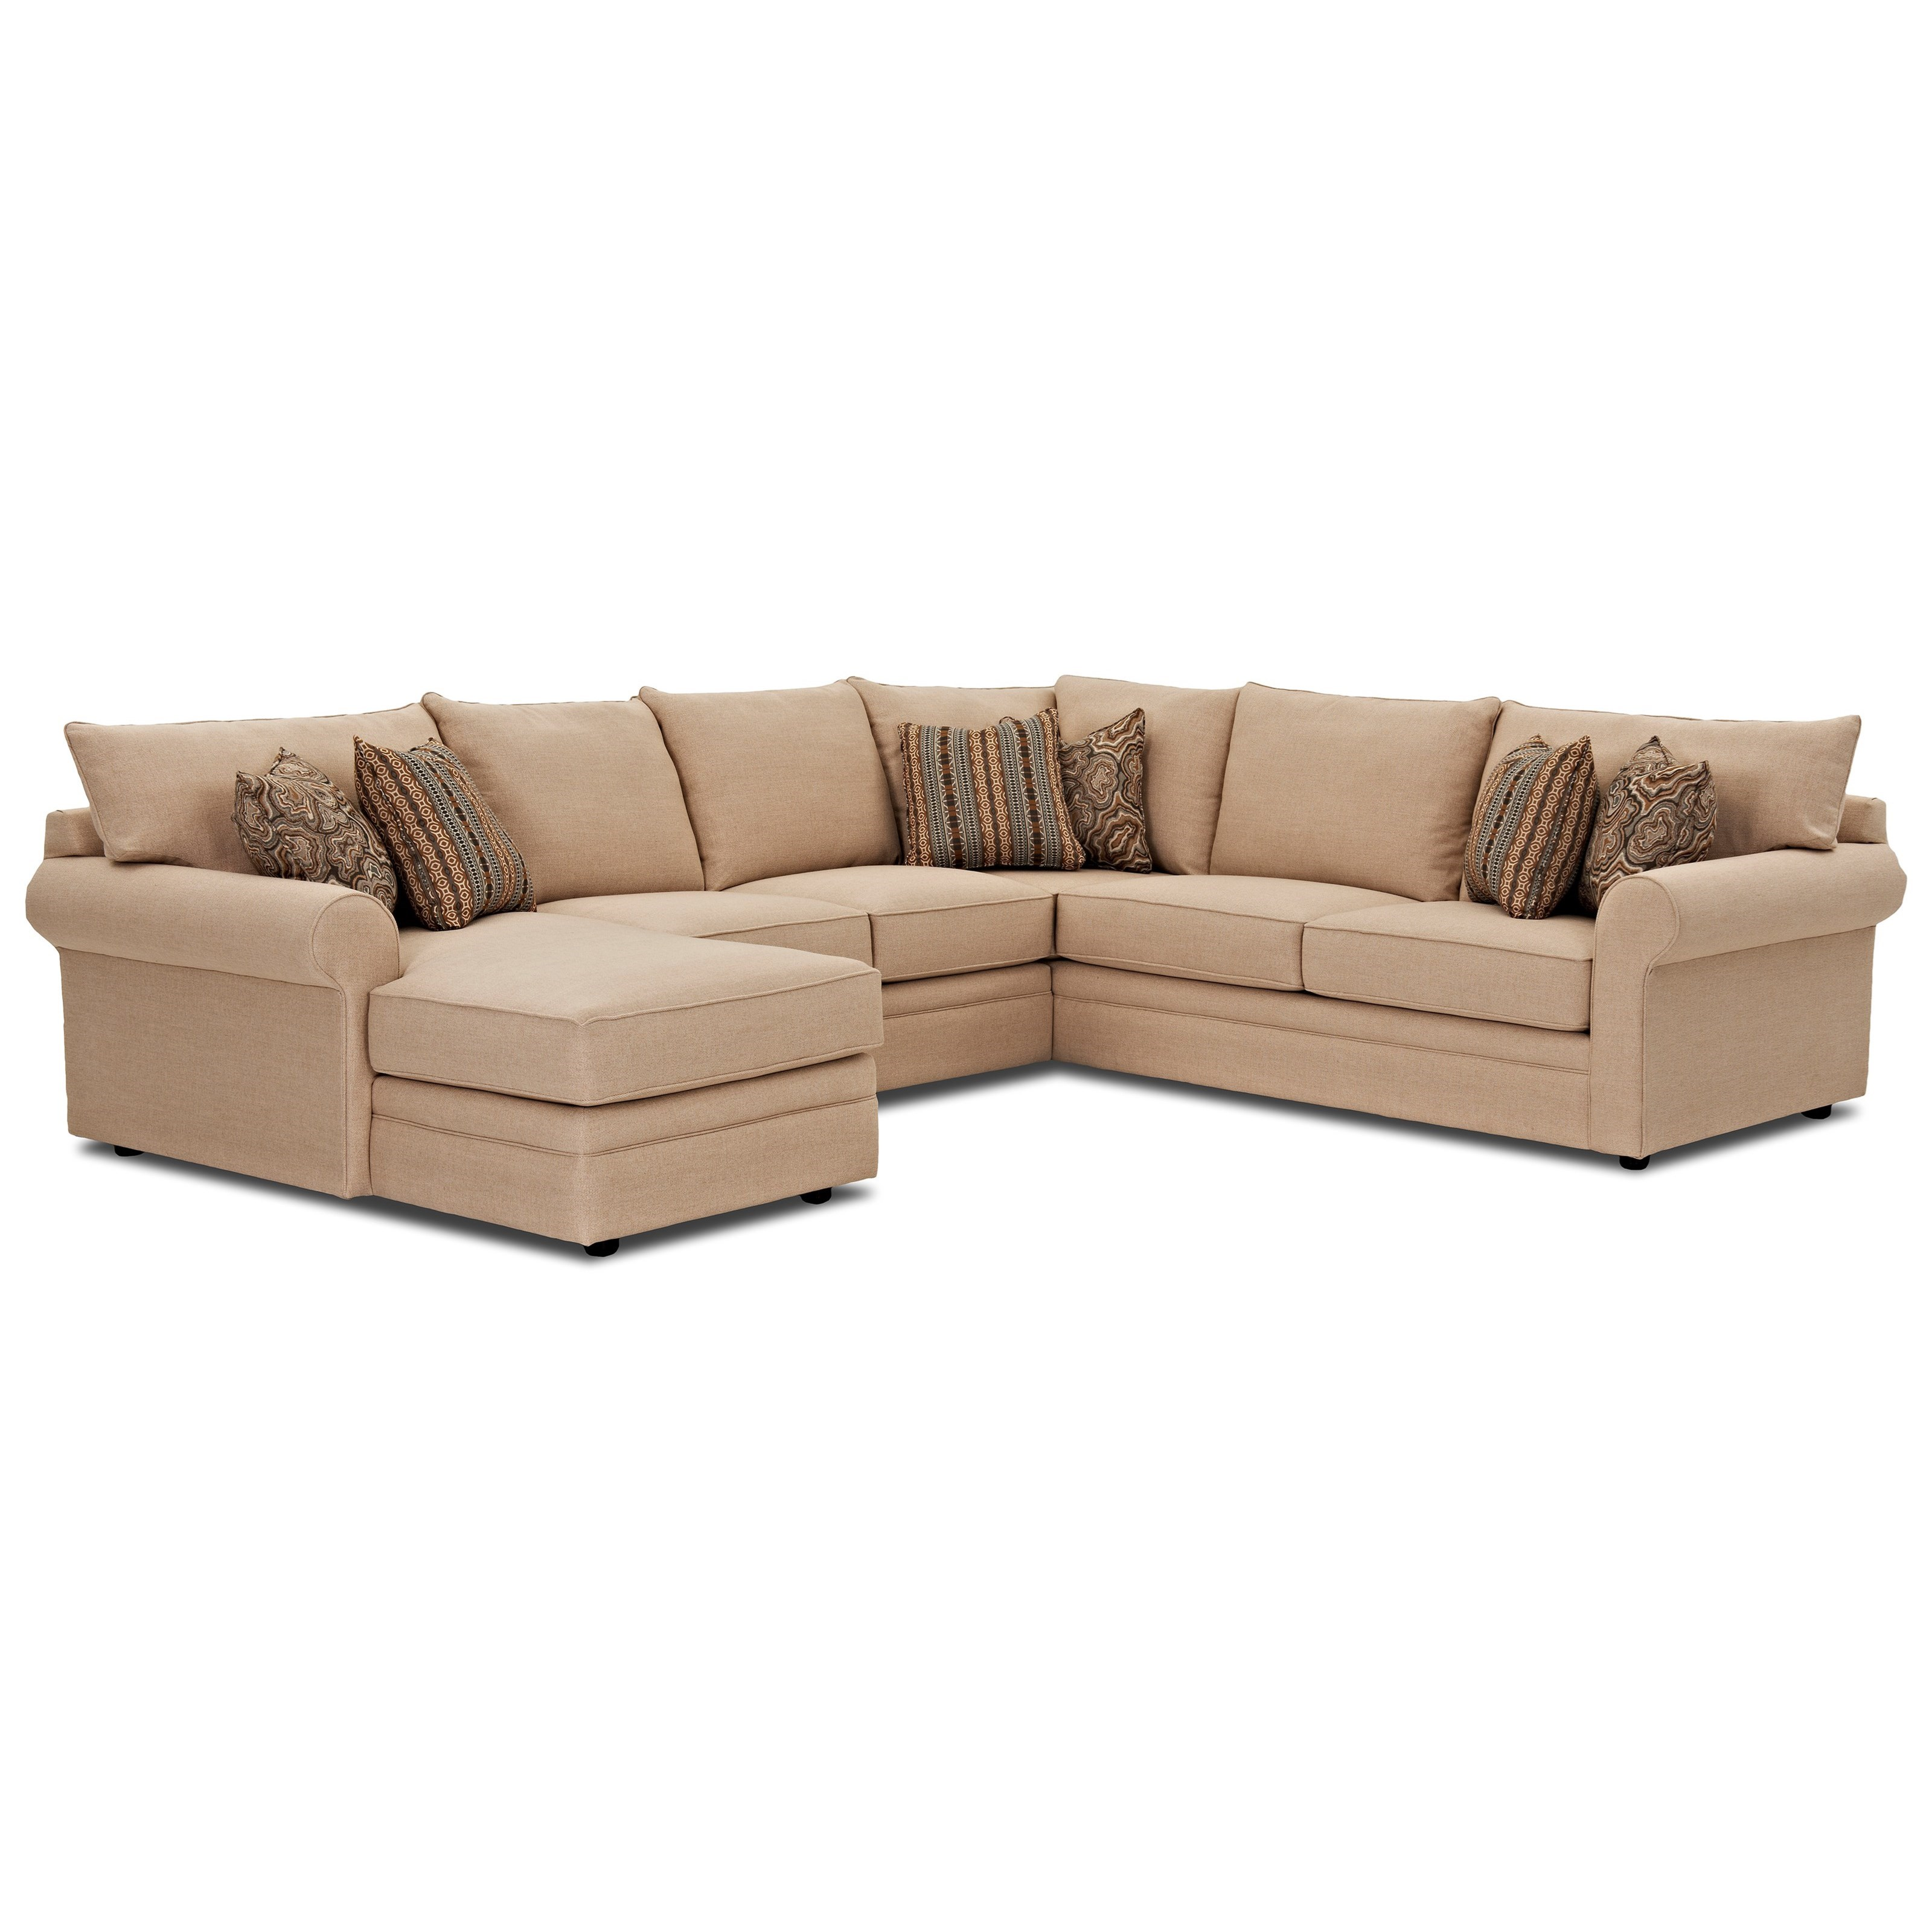 Comfy Sectional Sofa w/ LAF Chaise by Klaussner at Johnny Janosik